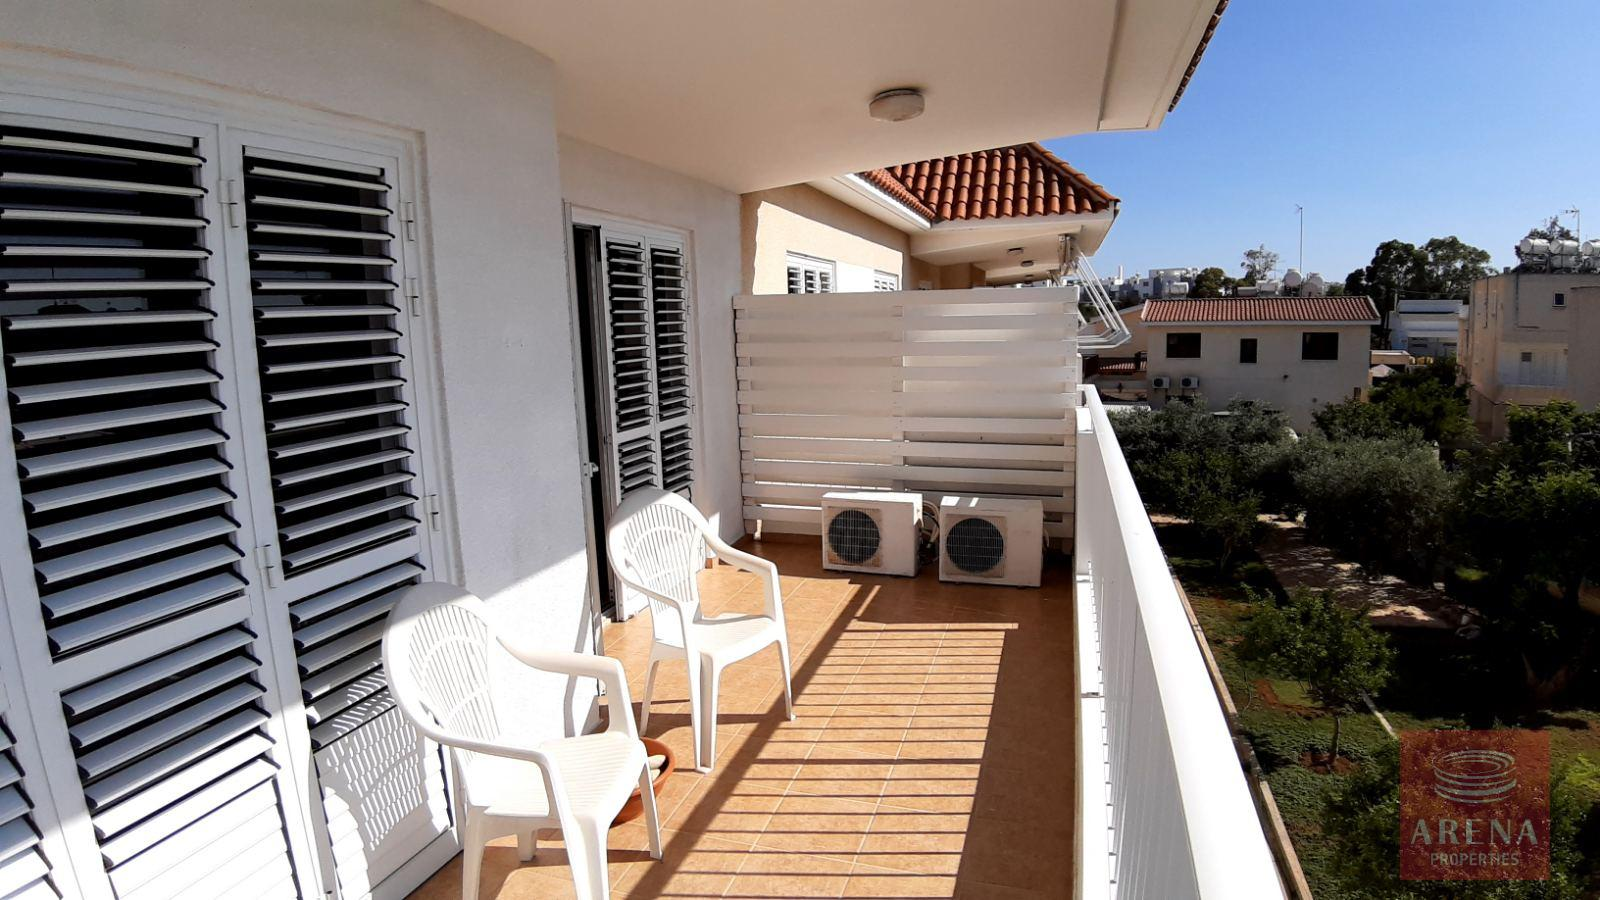 2 Bed Apt for rent in Paralimni - balcony